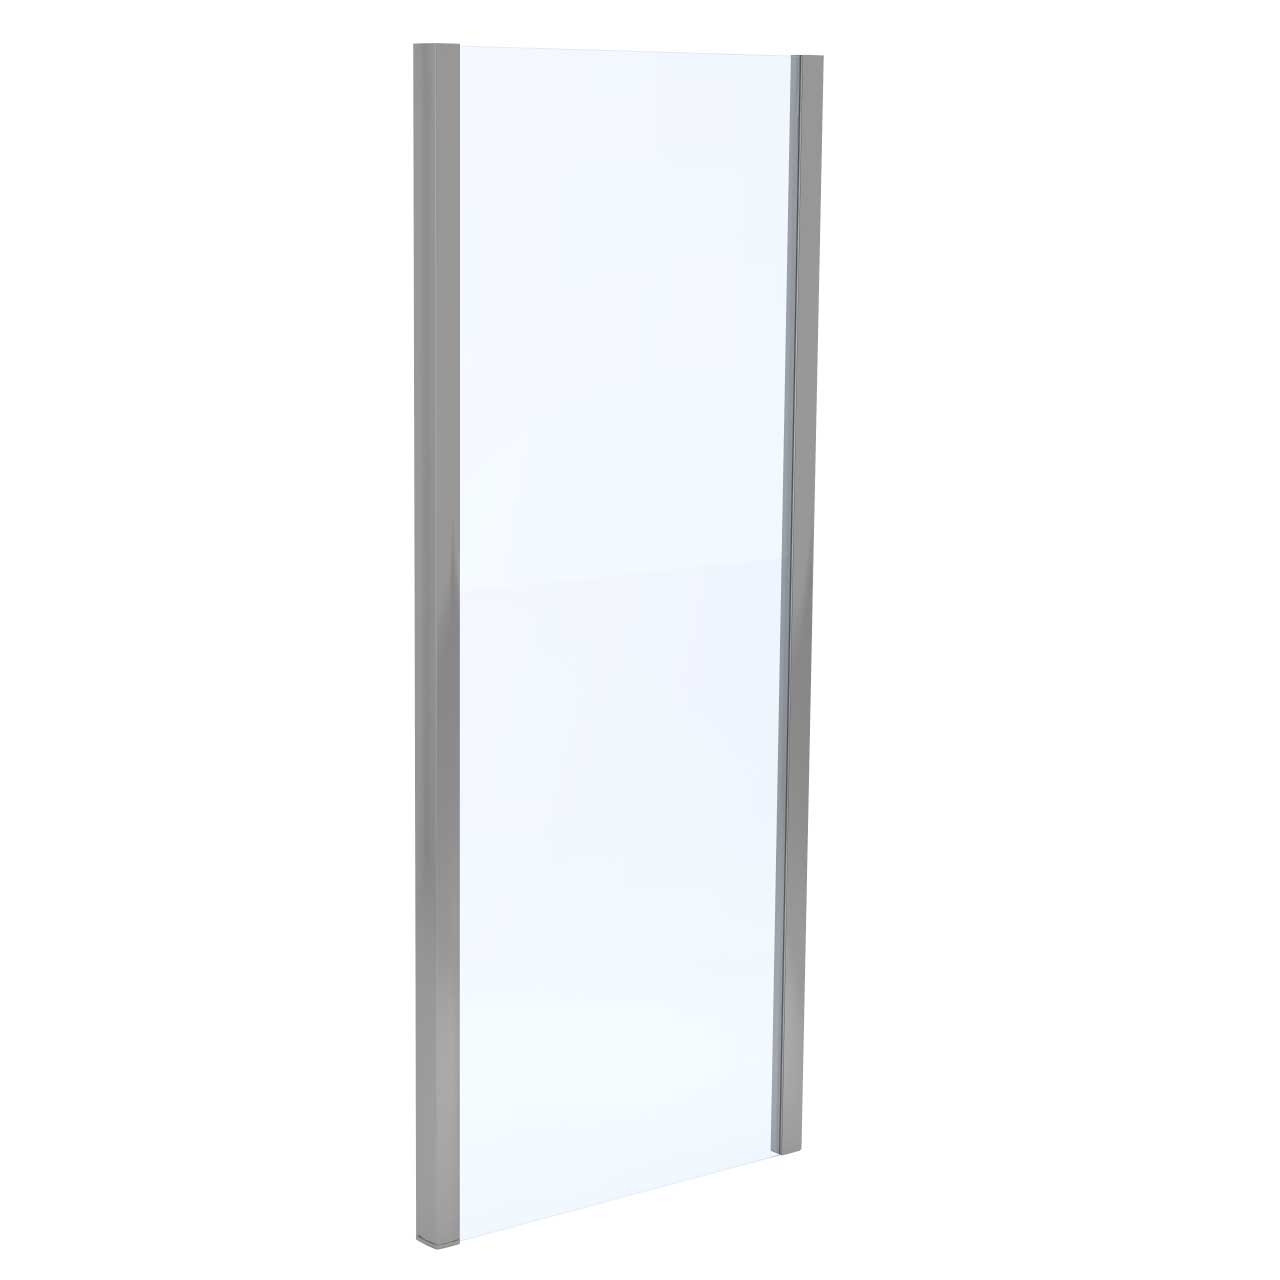 Series 6 1200 x 760 Sliding Door Enclosure